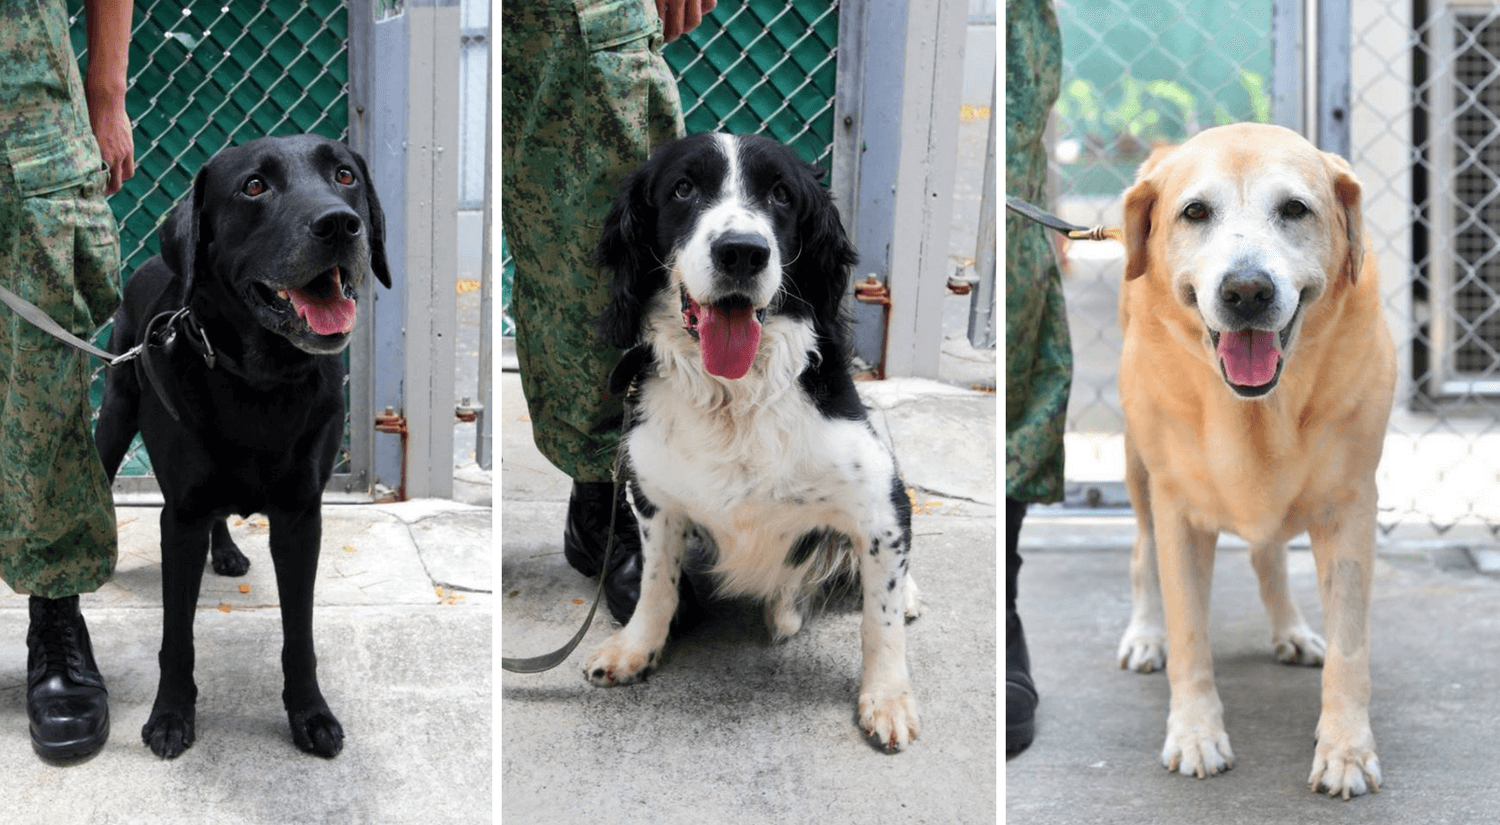 Adopt a retired police or military dog   Vanillapup